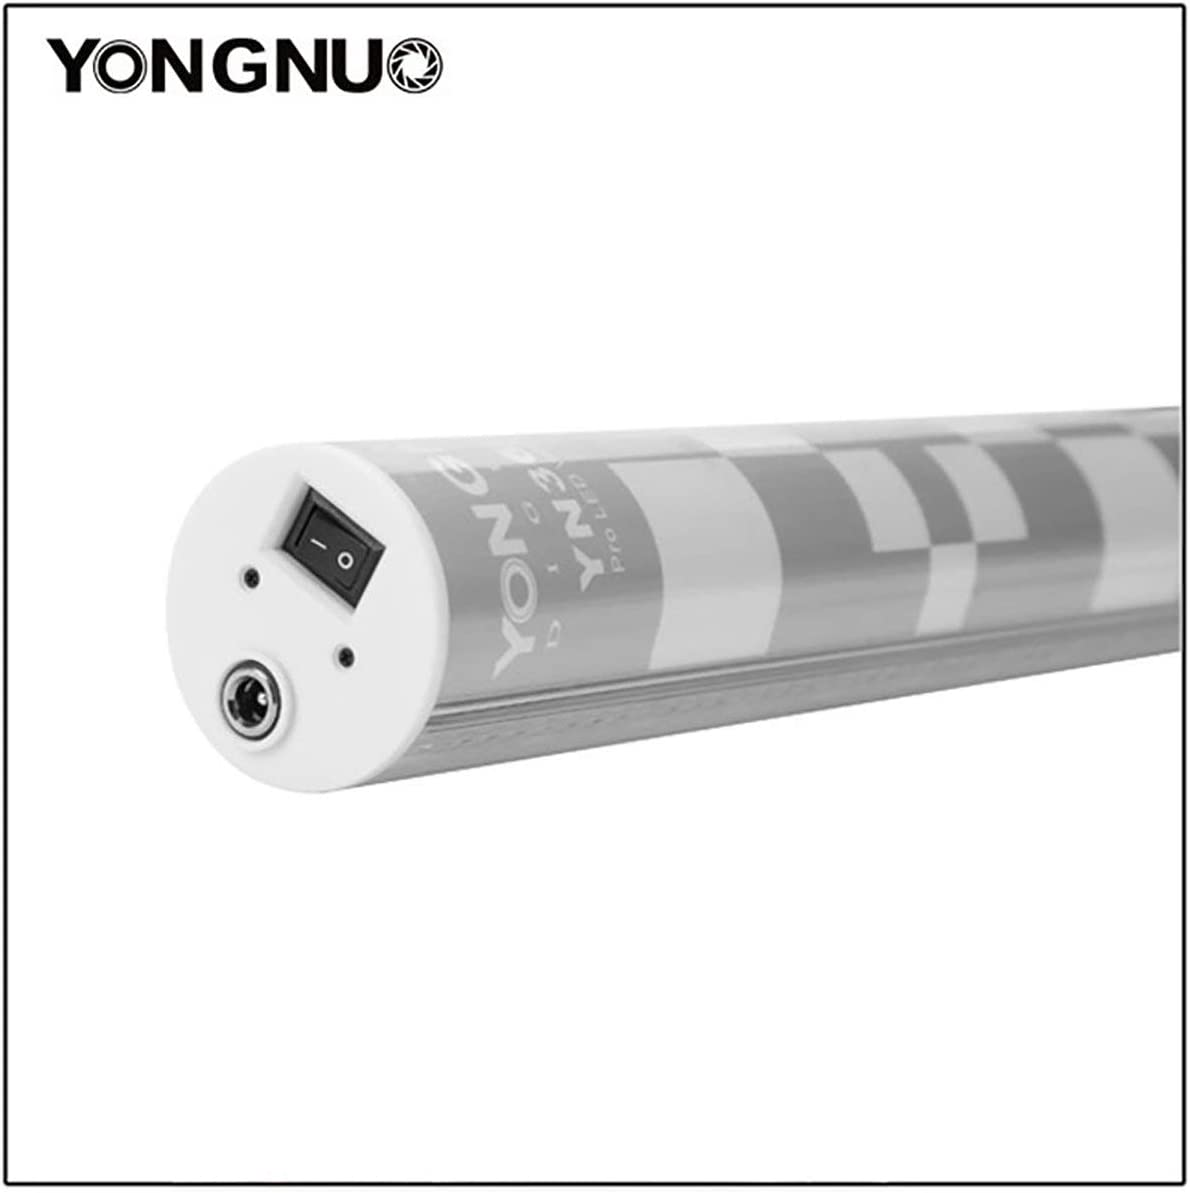 YONGNUO YN360 II Pro LED Video Light with Color Temperature 5600K